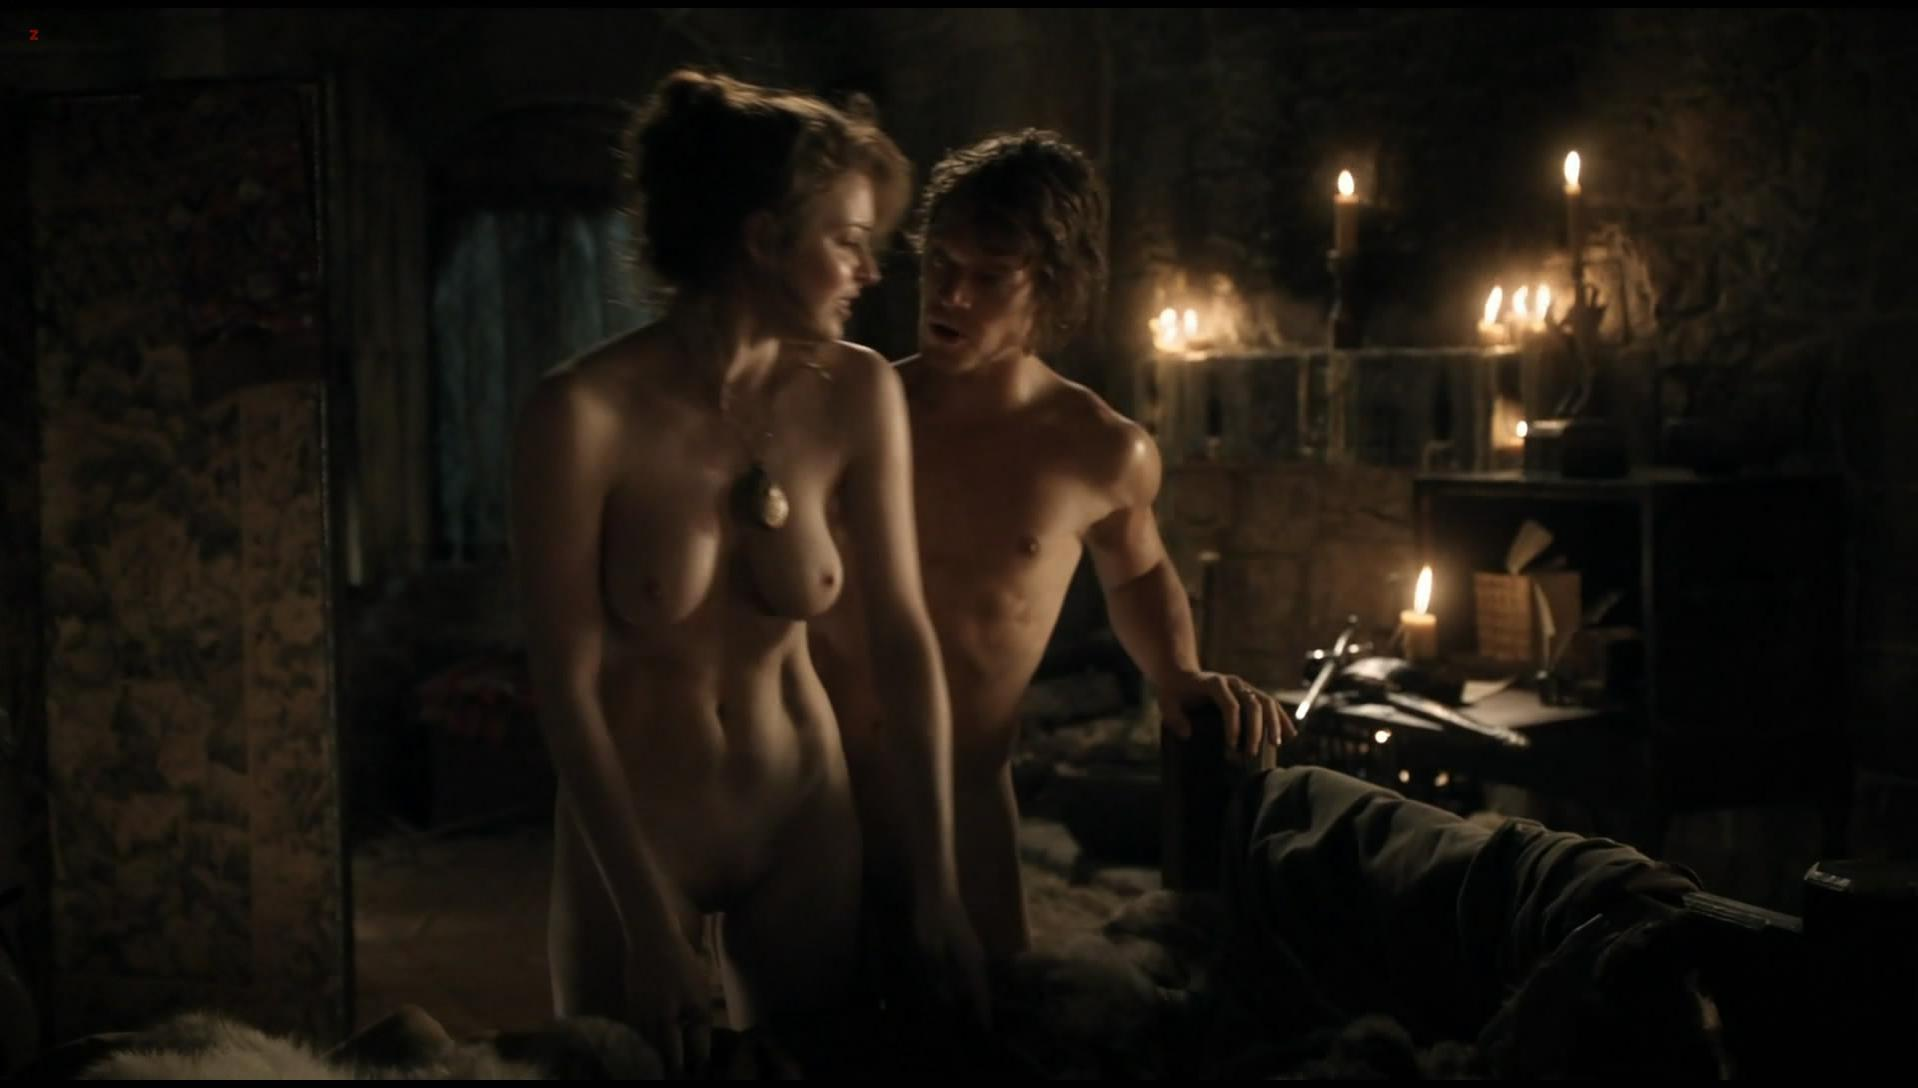 Esme Bianco nude - Game of Thrones s01e05 (2011)